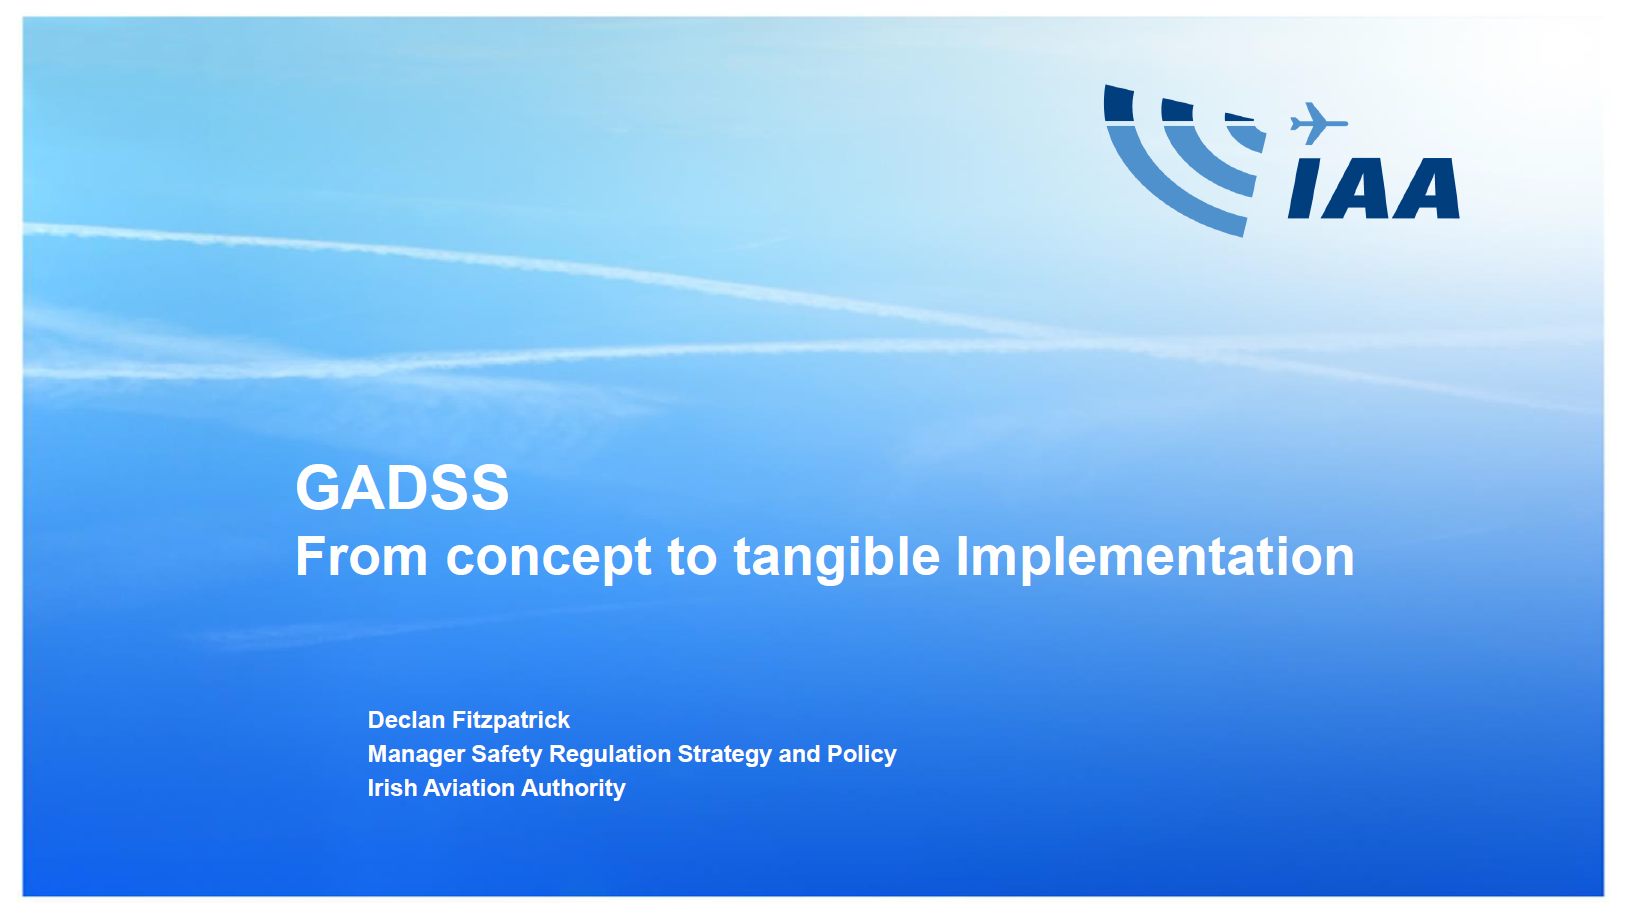 Irish Aviation Authority Presentation on GADSS – From Concept to Tangible Implementation